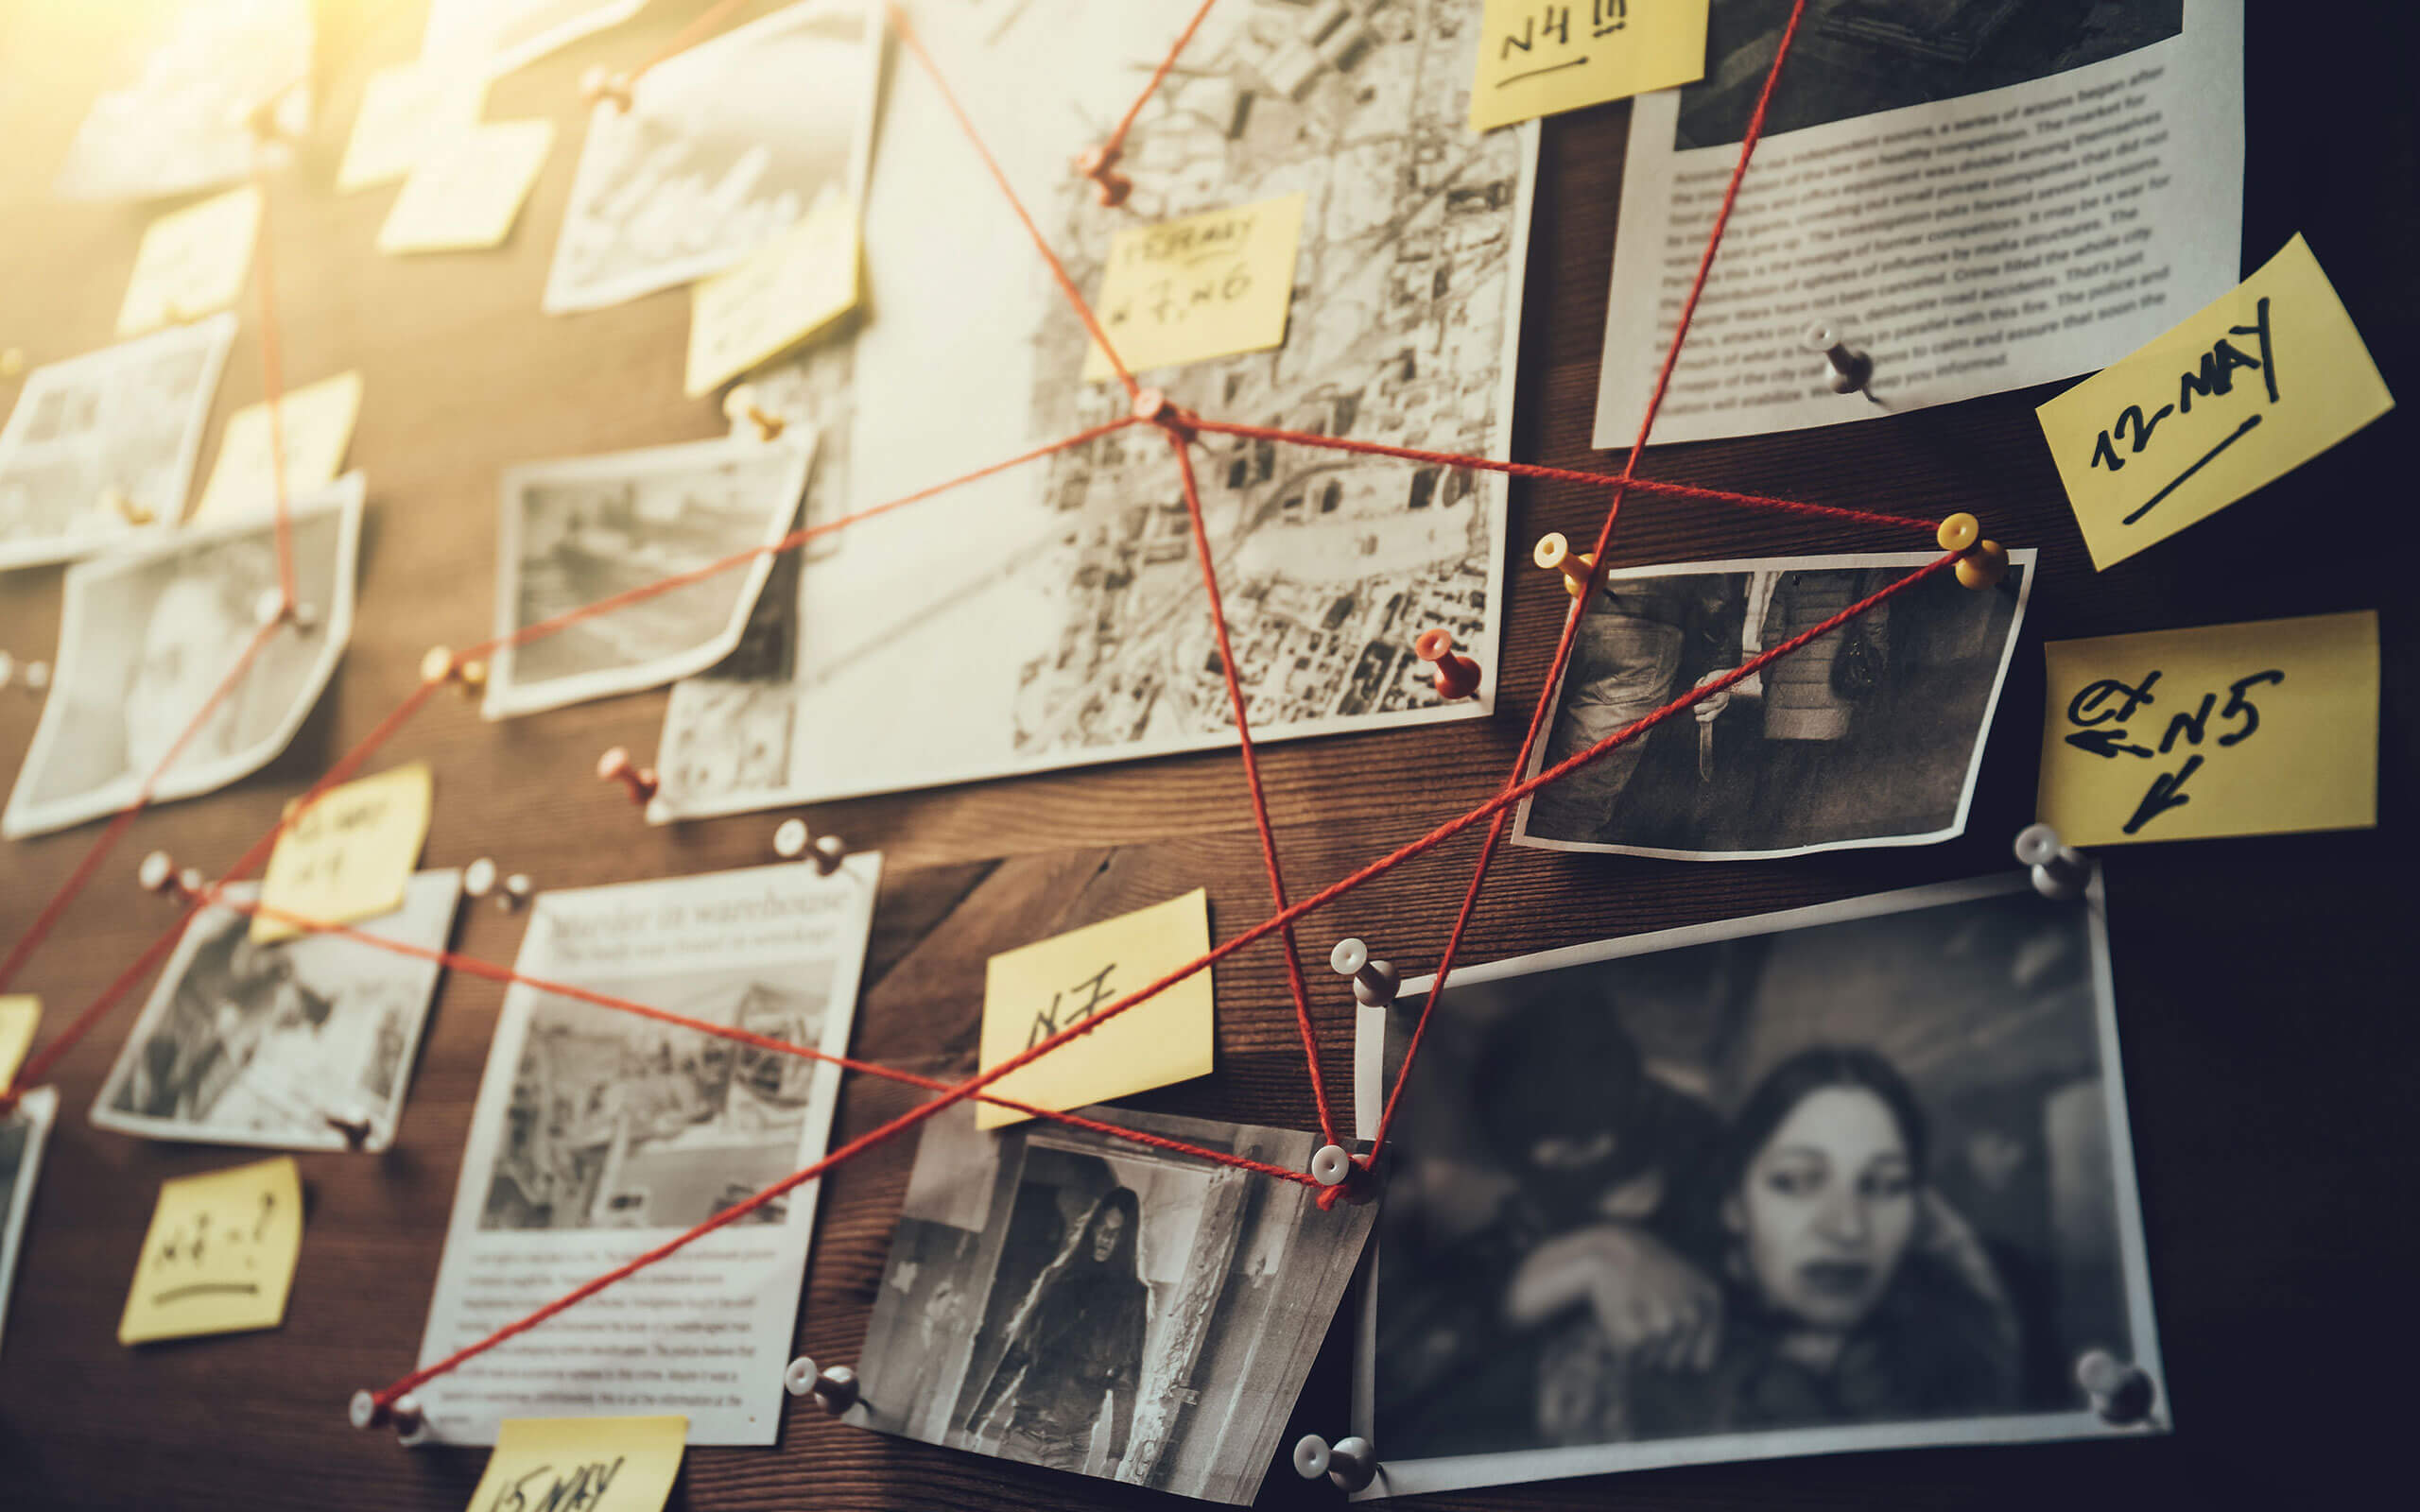 Crime investigation board with red string linking photos and post-its